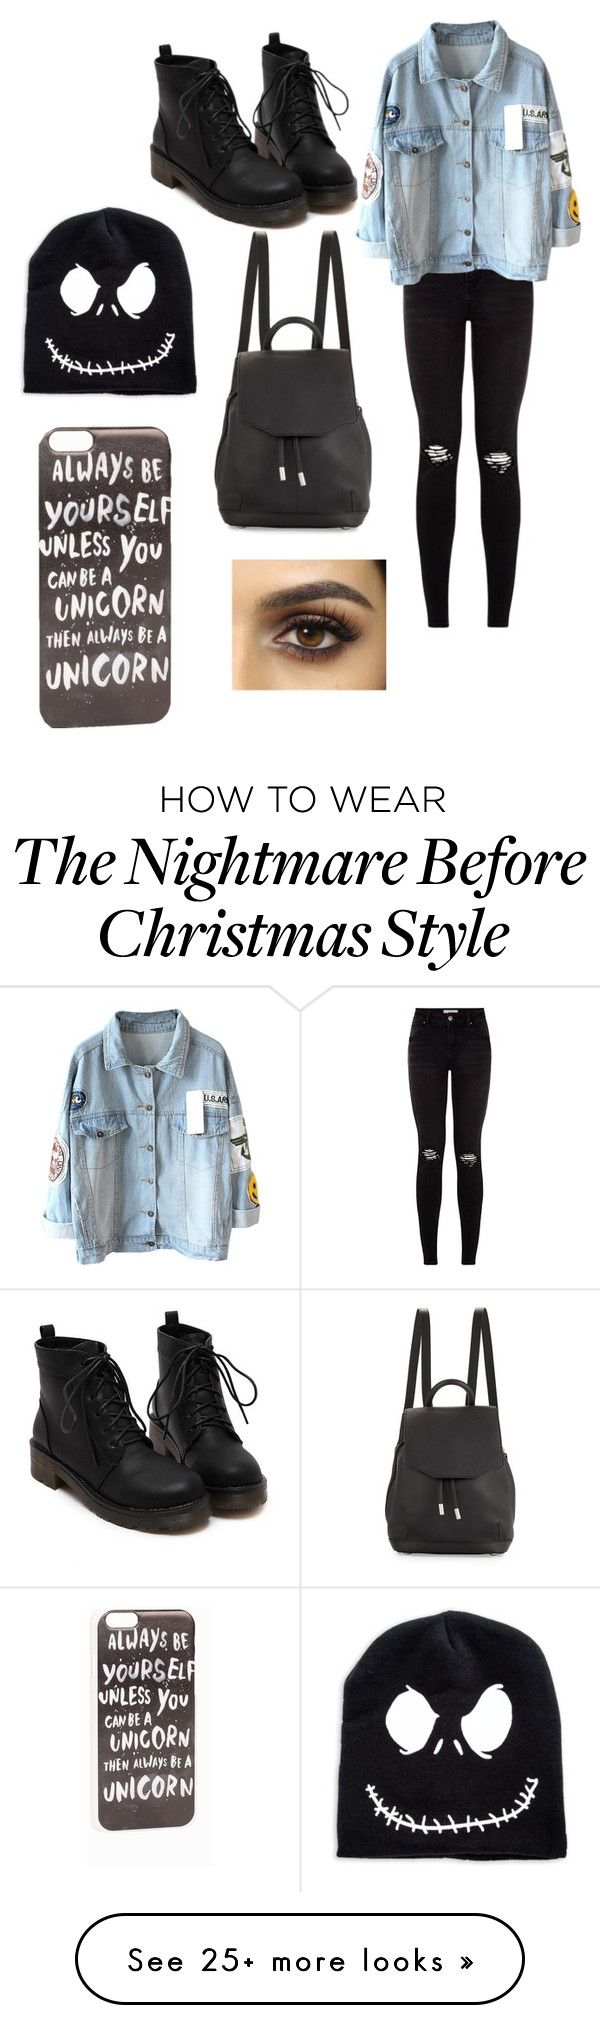 """hi"" by ericasbackup on Polyvore featuring rag & bone and JFR"